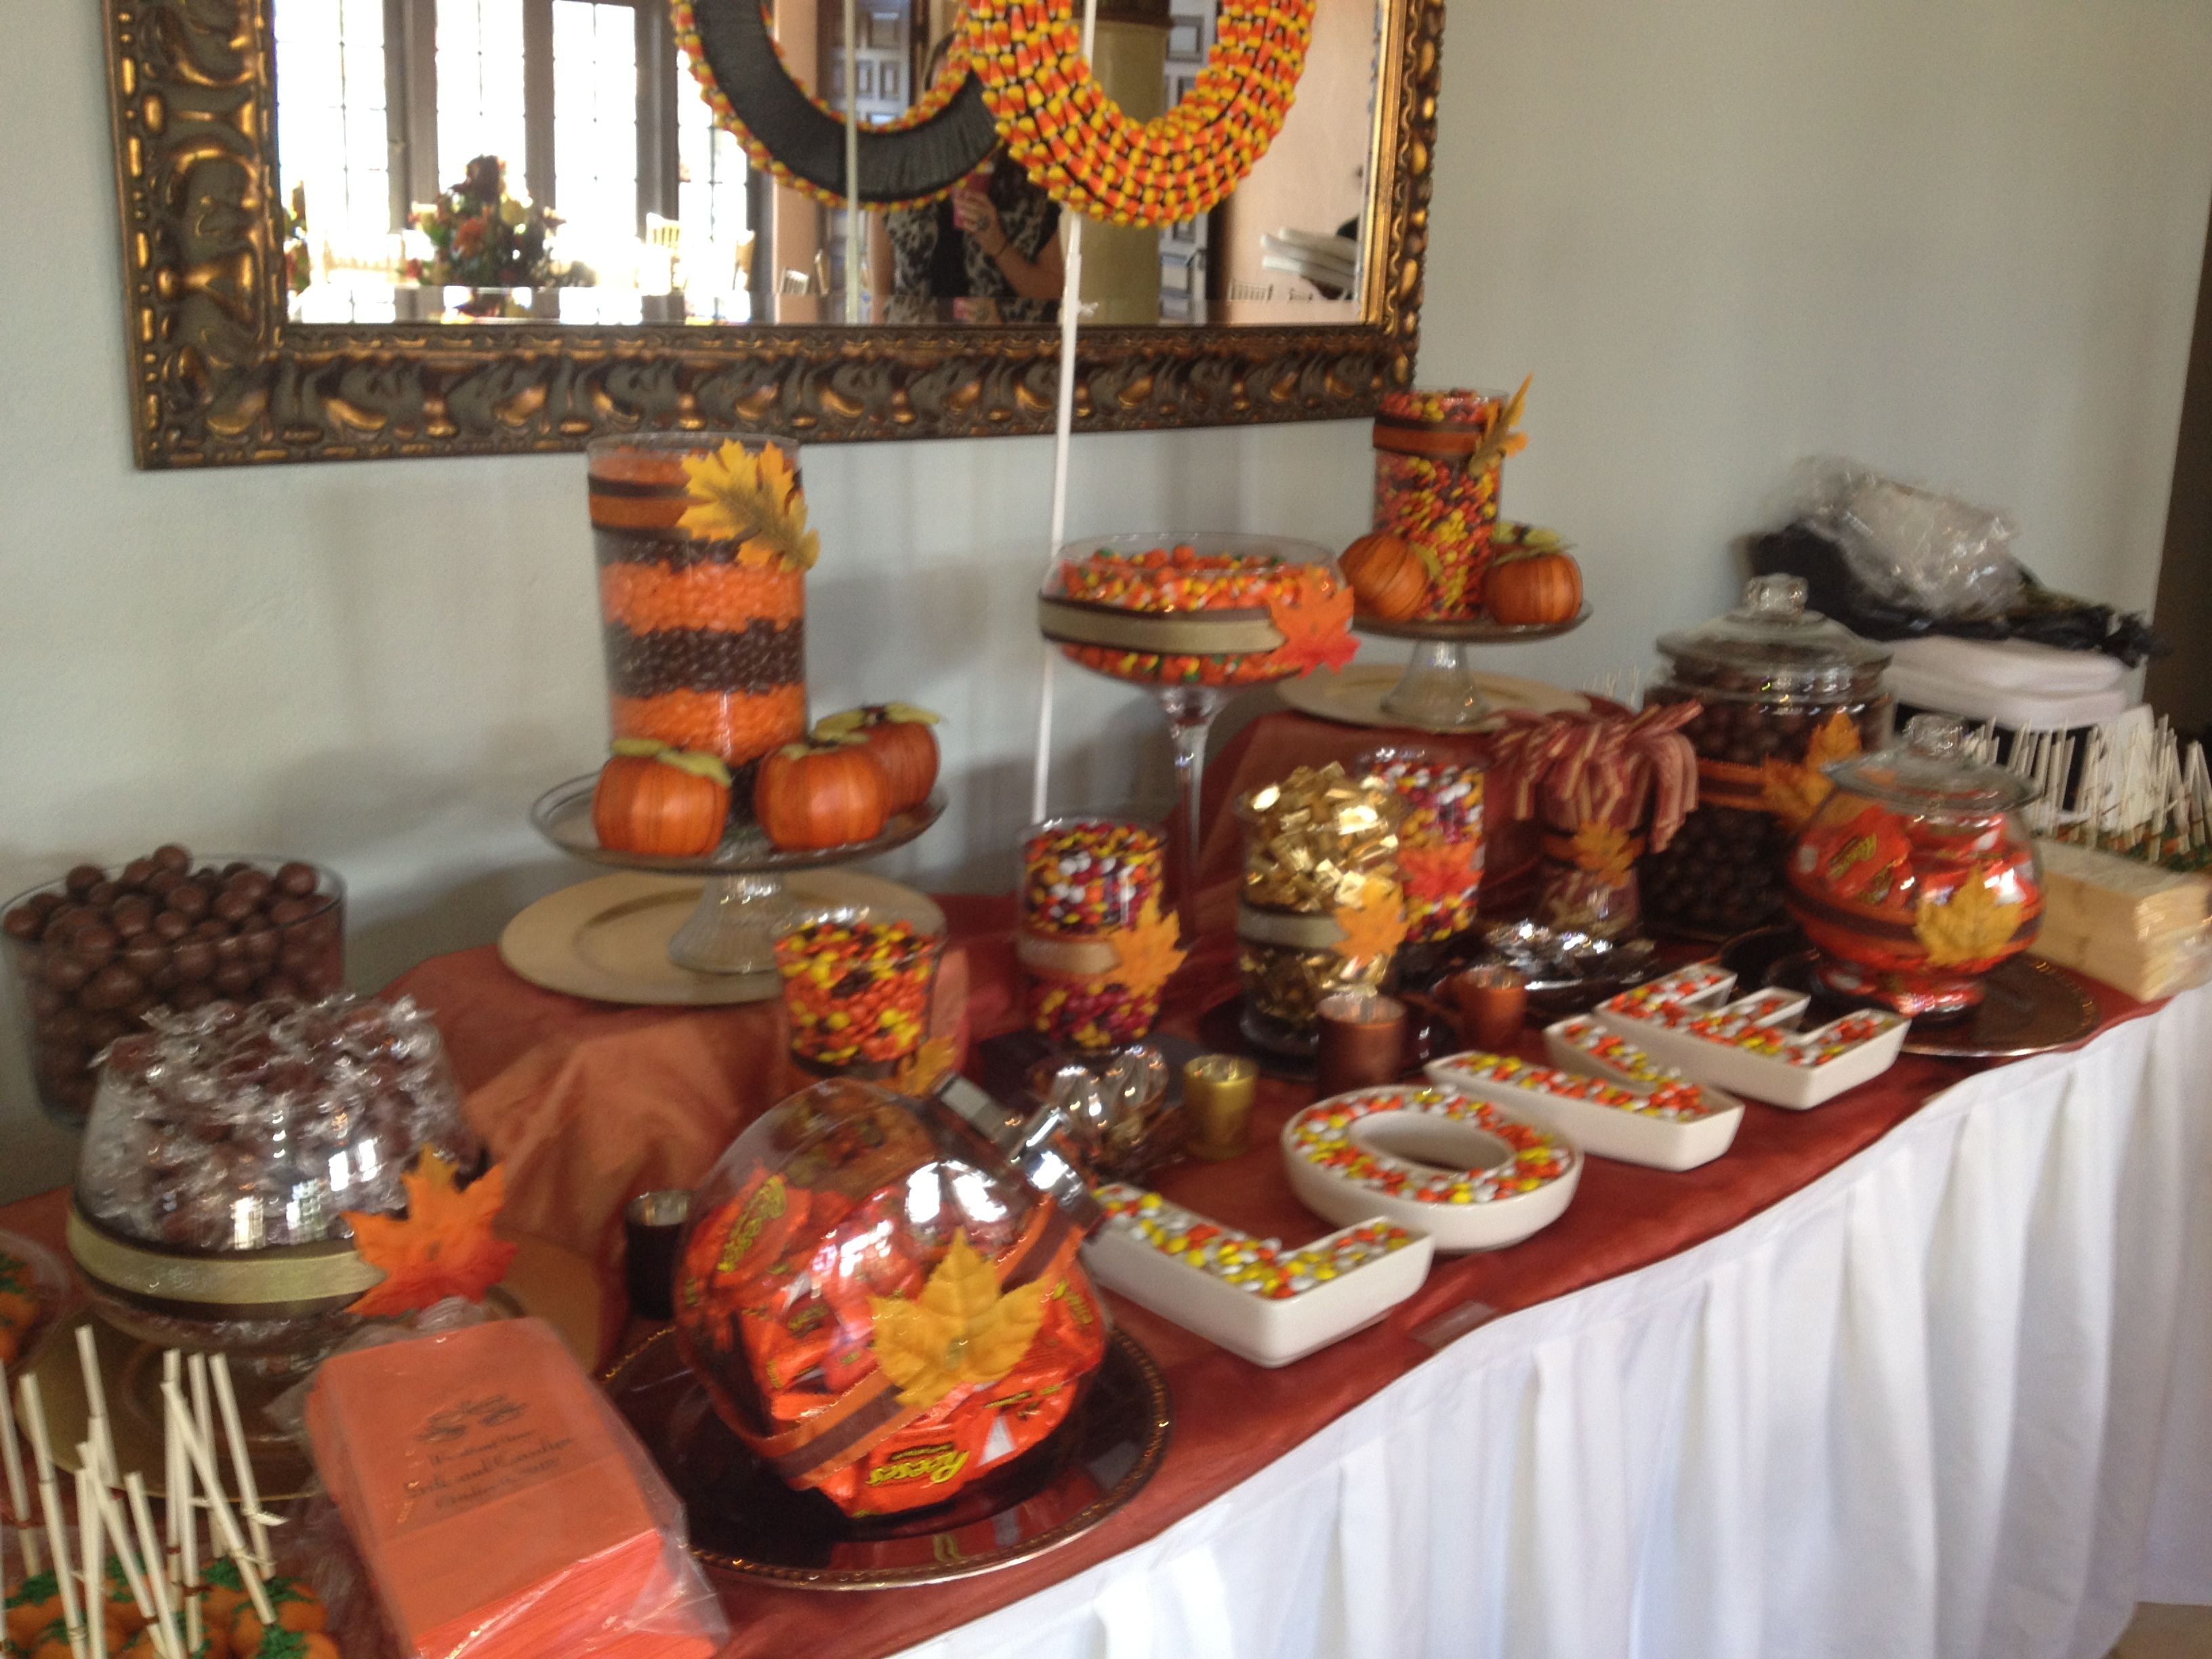 Fall Wedding Candy Buffet Ideas: The Candy Buffet That I Made For My Sister-in-law's Fall